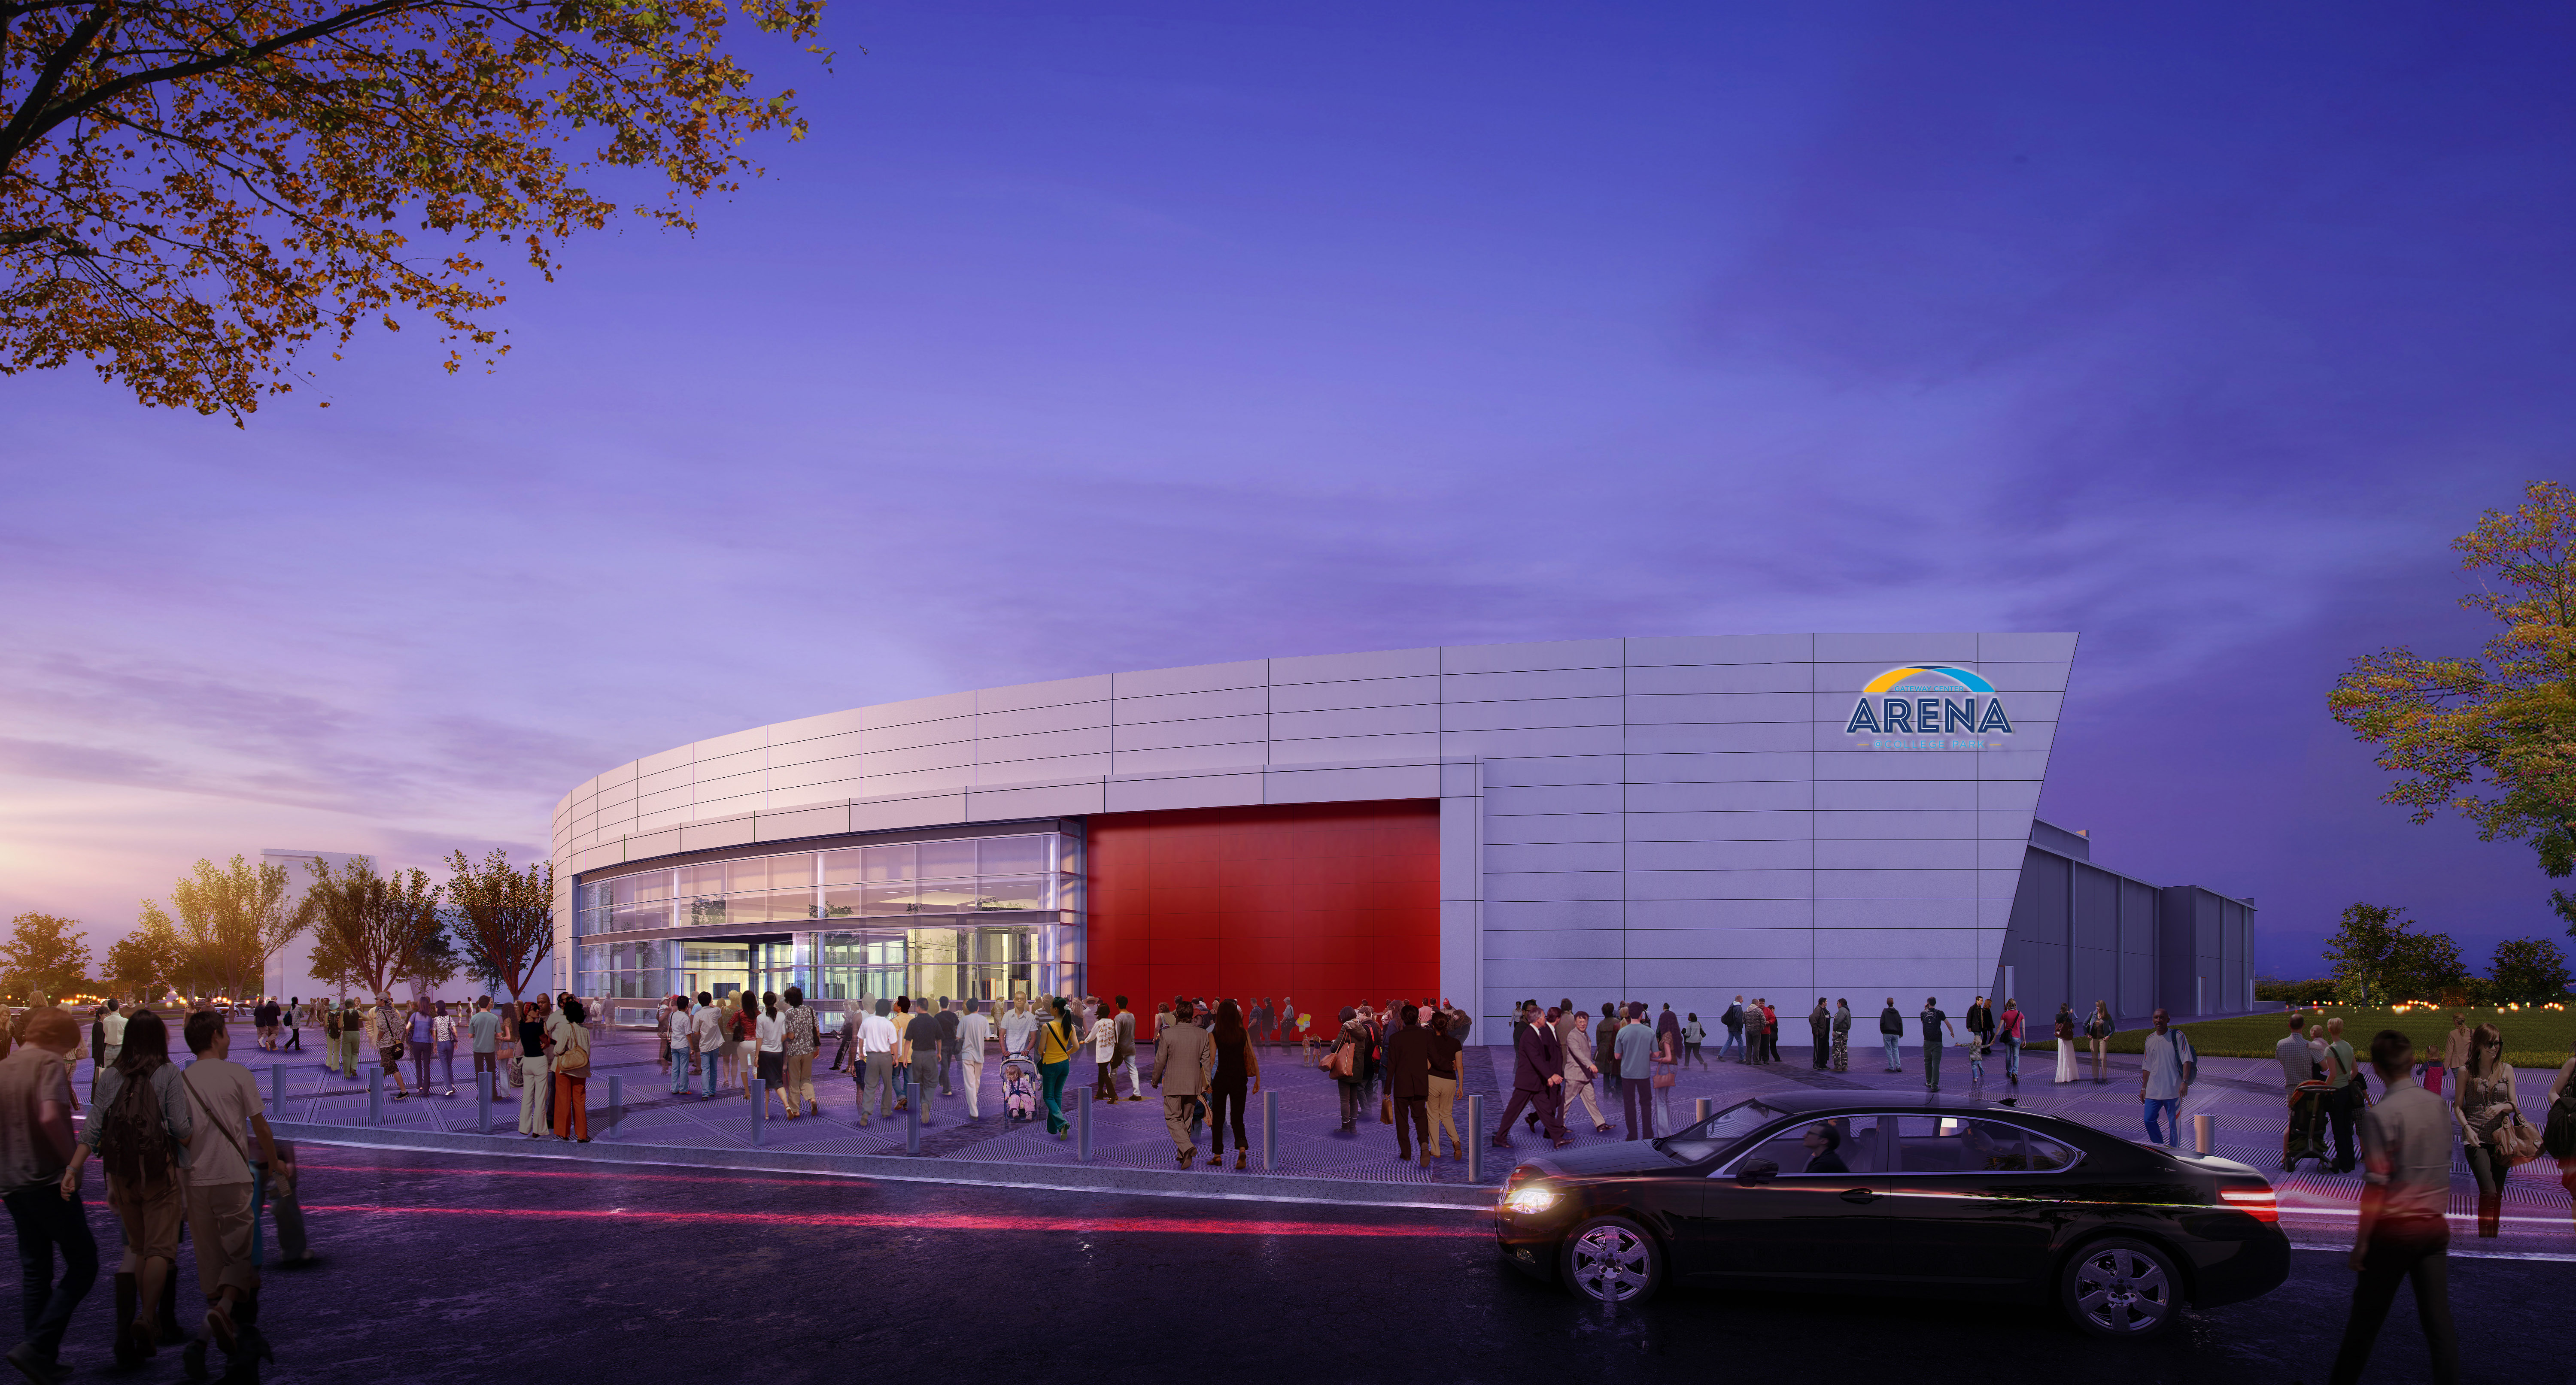 a rendering of the arena